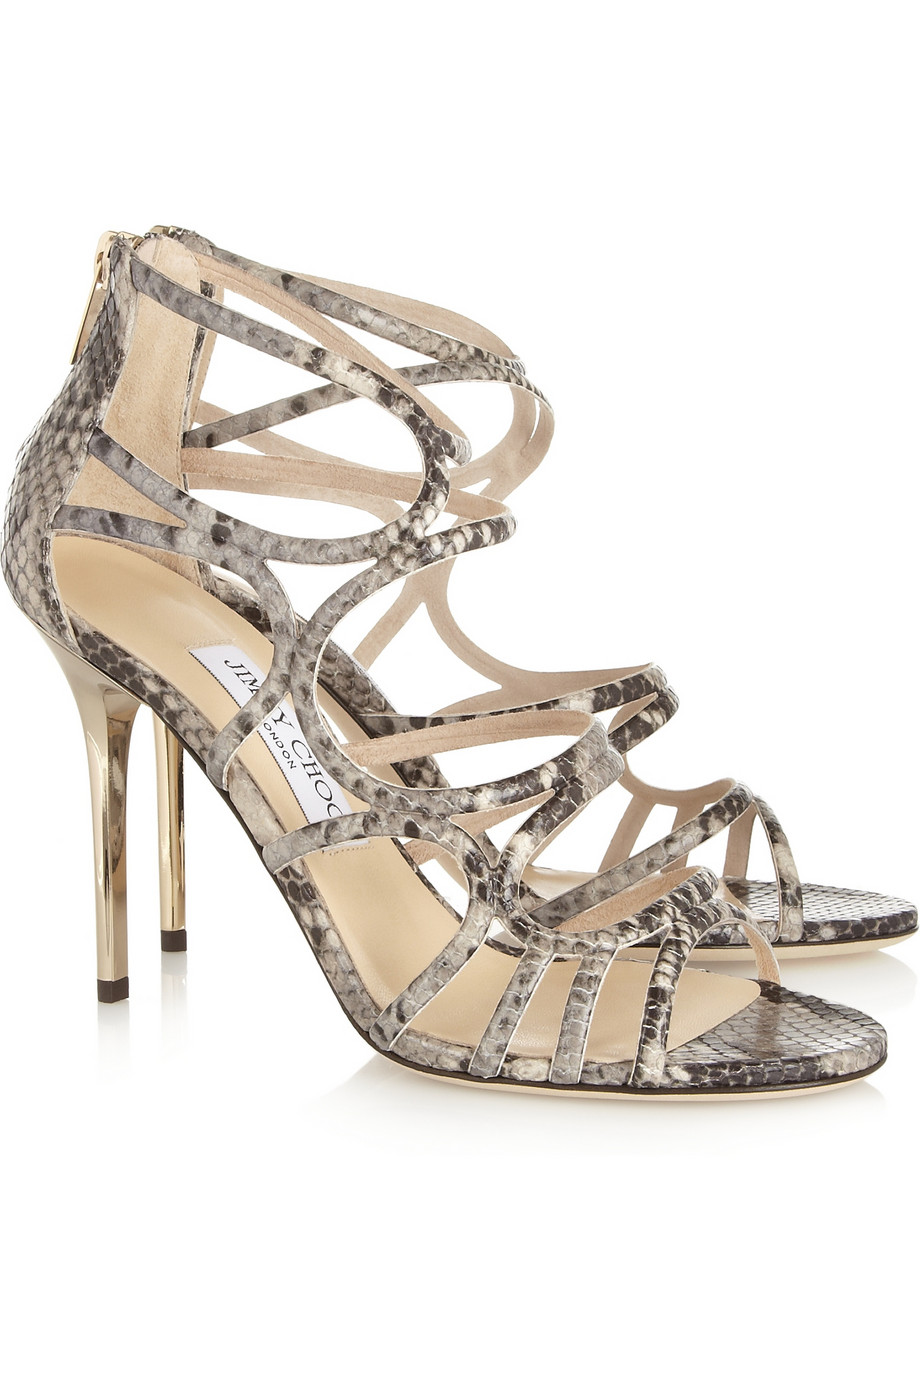 e3ab36fe723a Lyst - Jimmy Choo Snake effect Leather Sandals